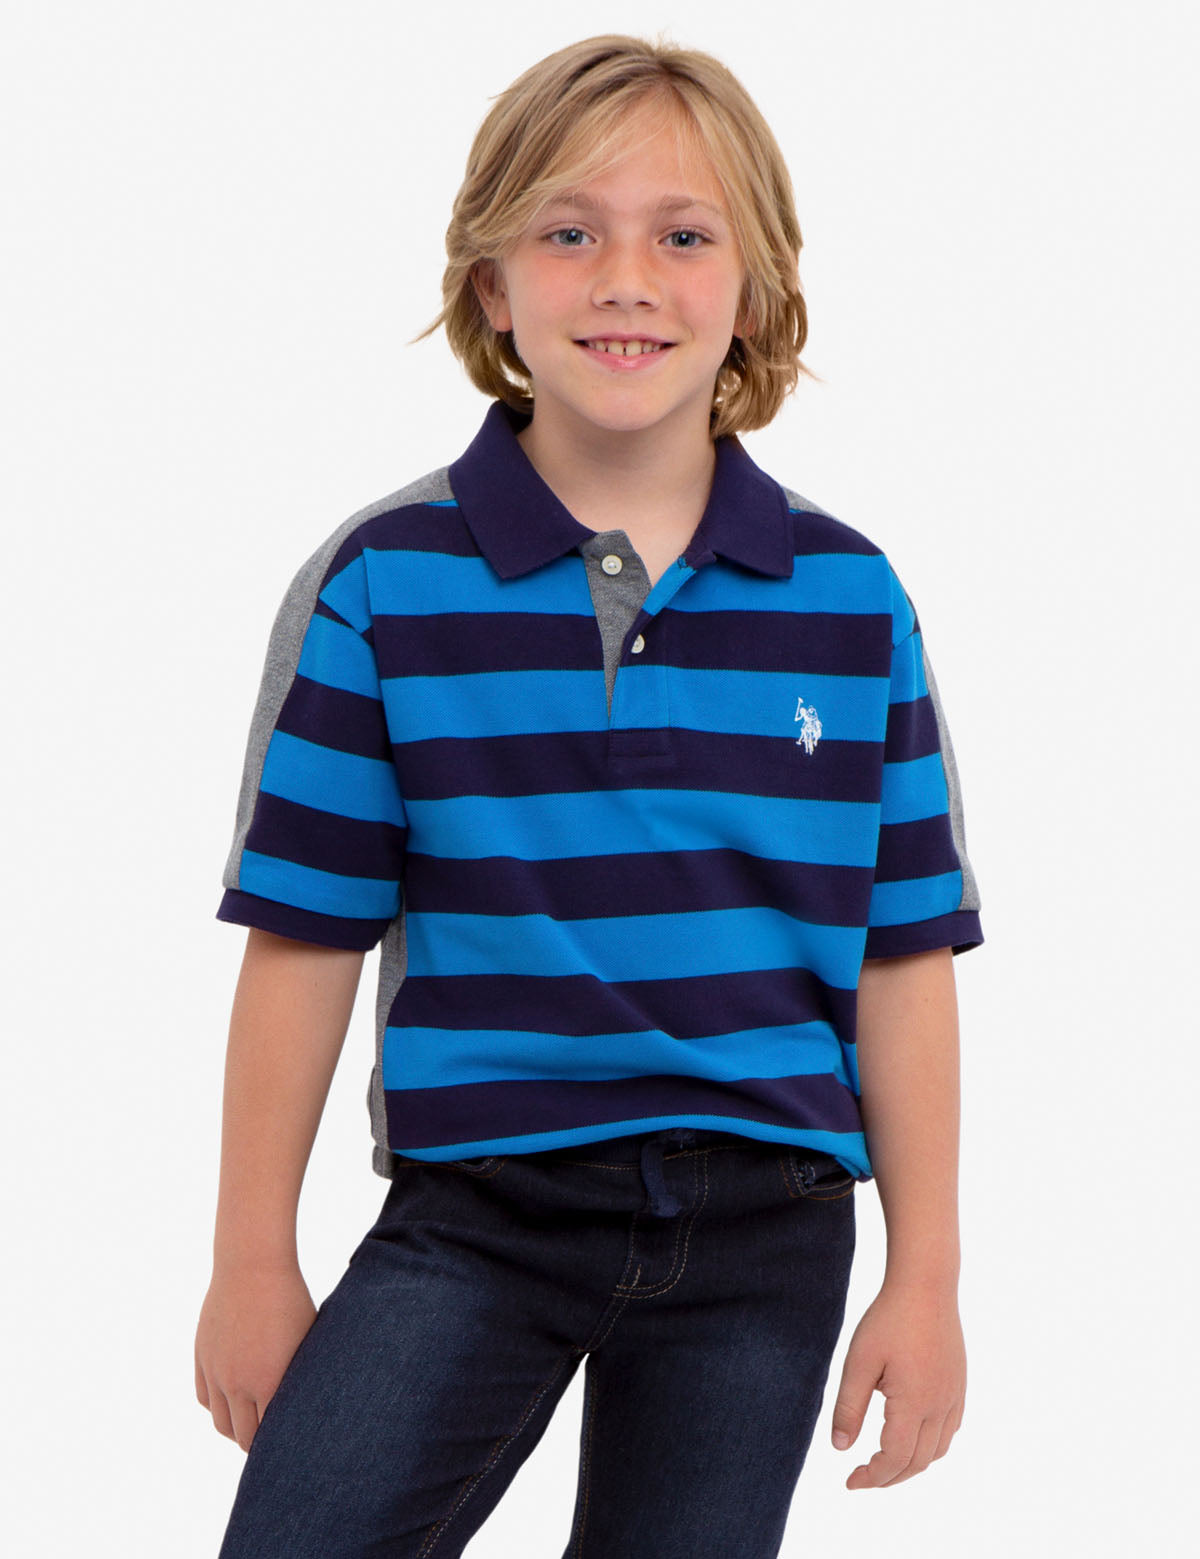 BOYS STRIPED COLORBLOCK PIQUE POLO SHIRT